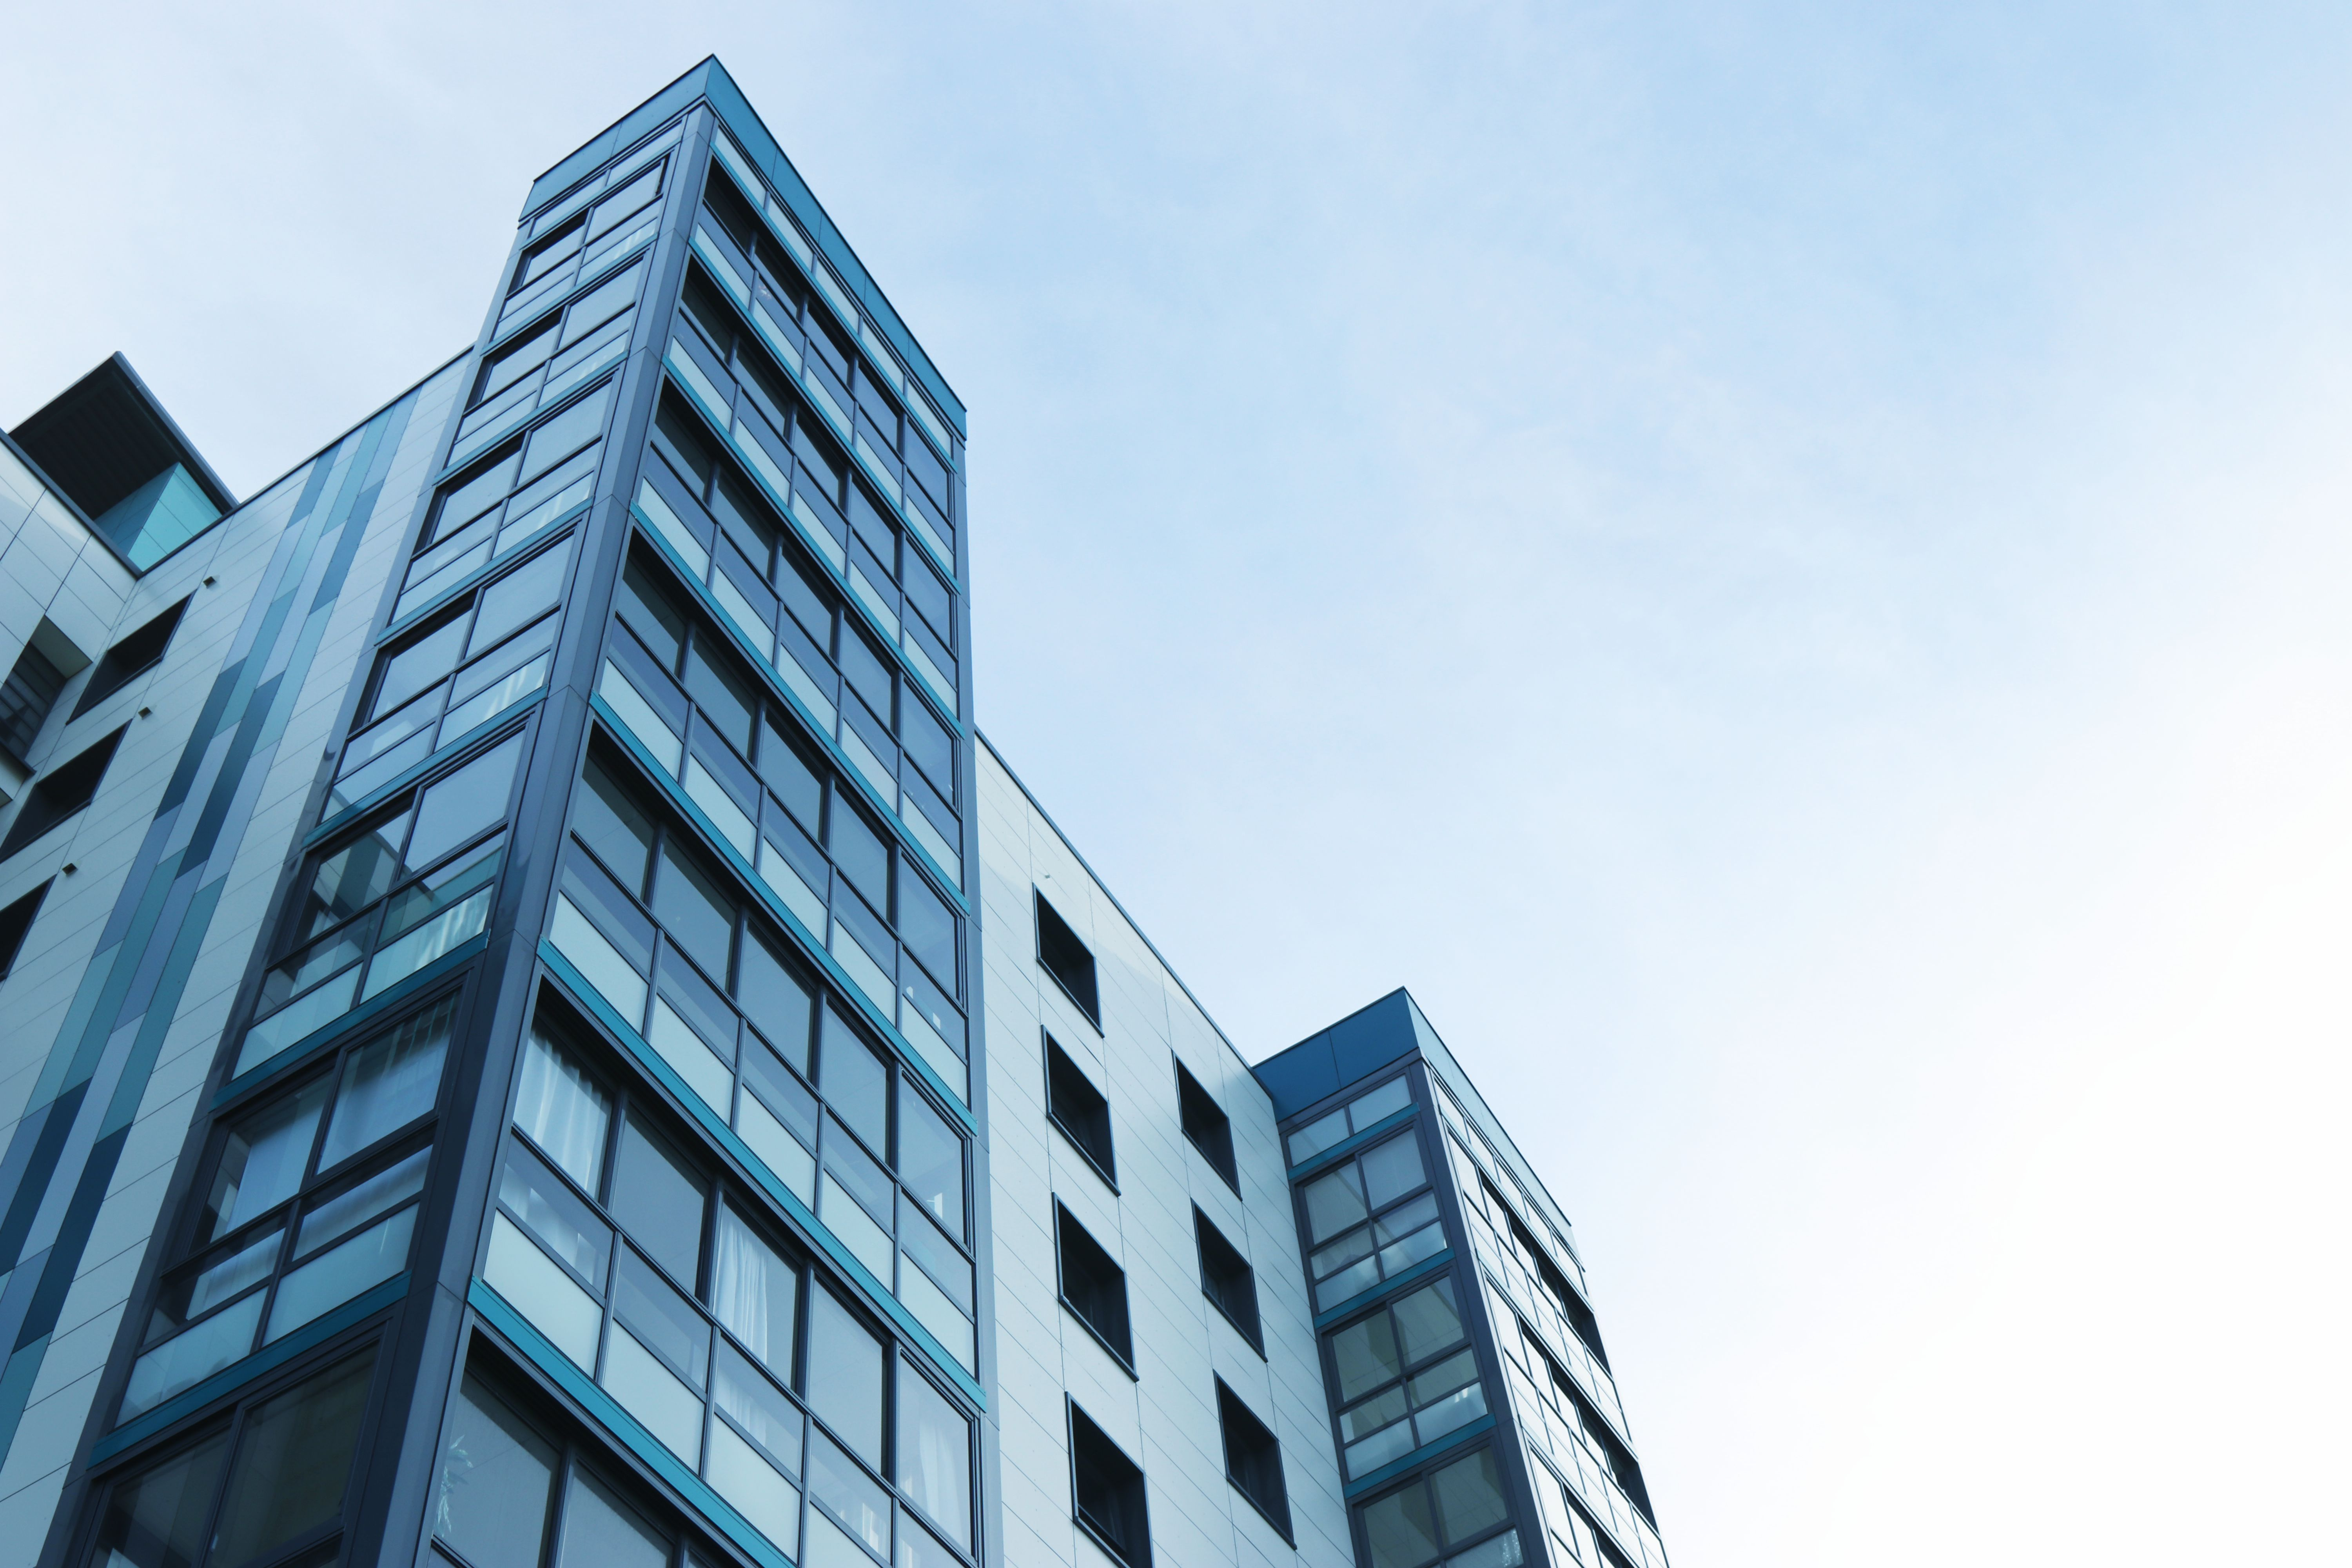 Low Angle View Of Office Building Against Sky  C B Free Stock